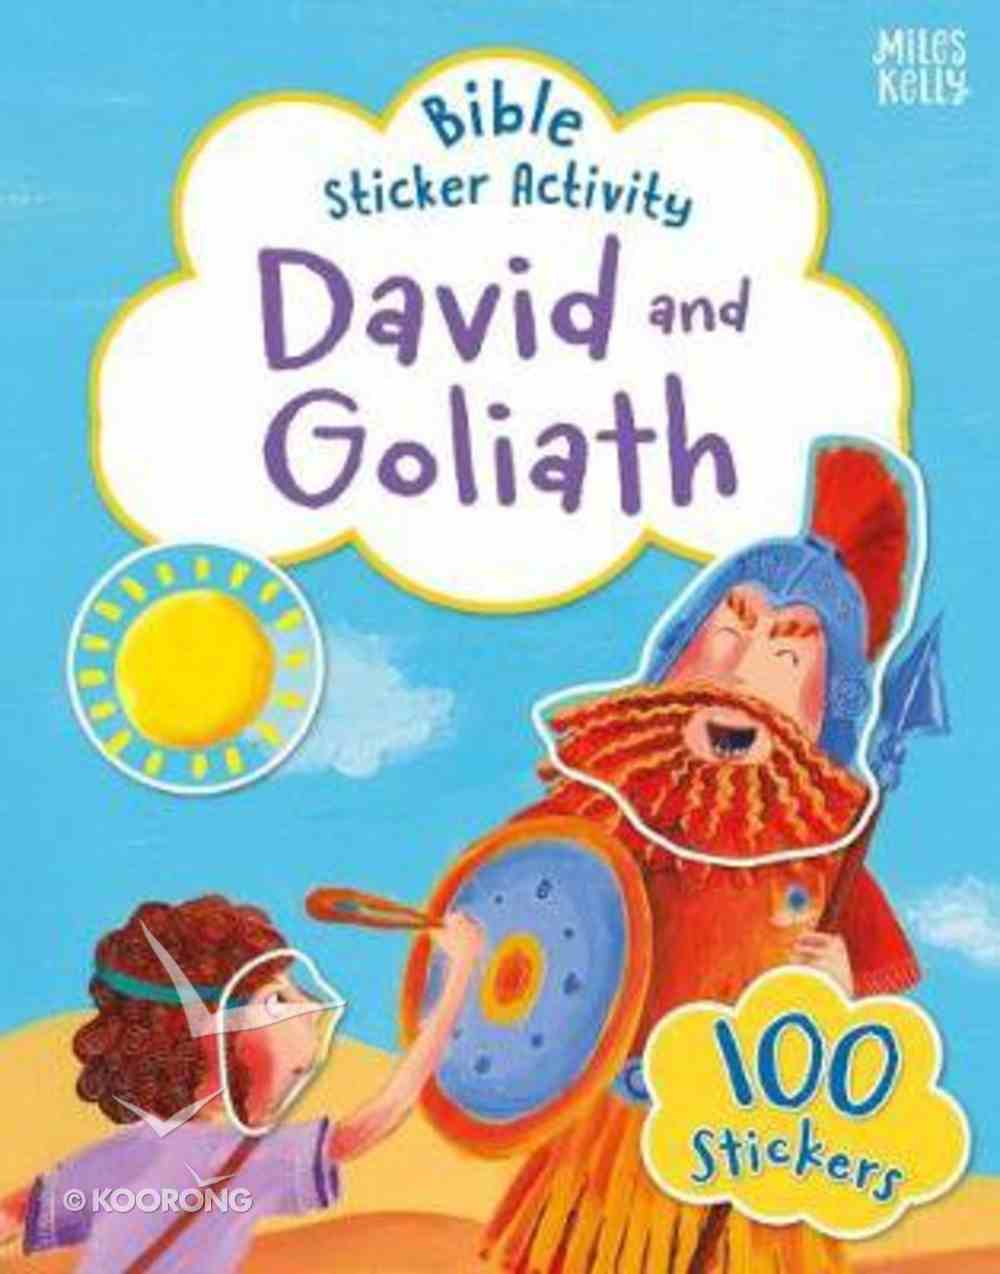 Bible Sticker Activity: David and Goliath Paperback